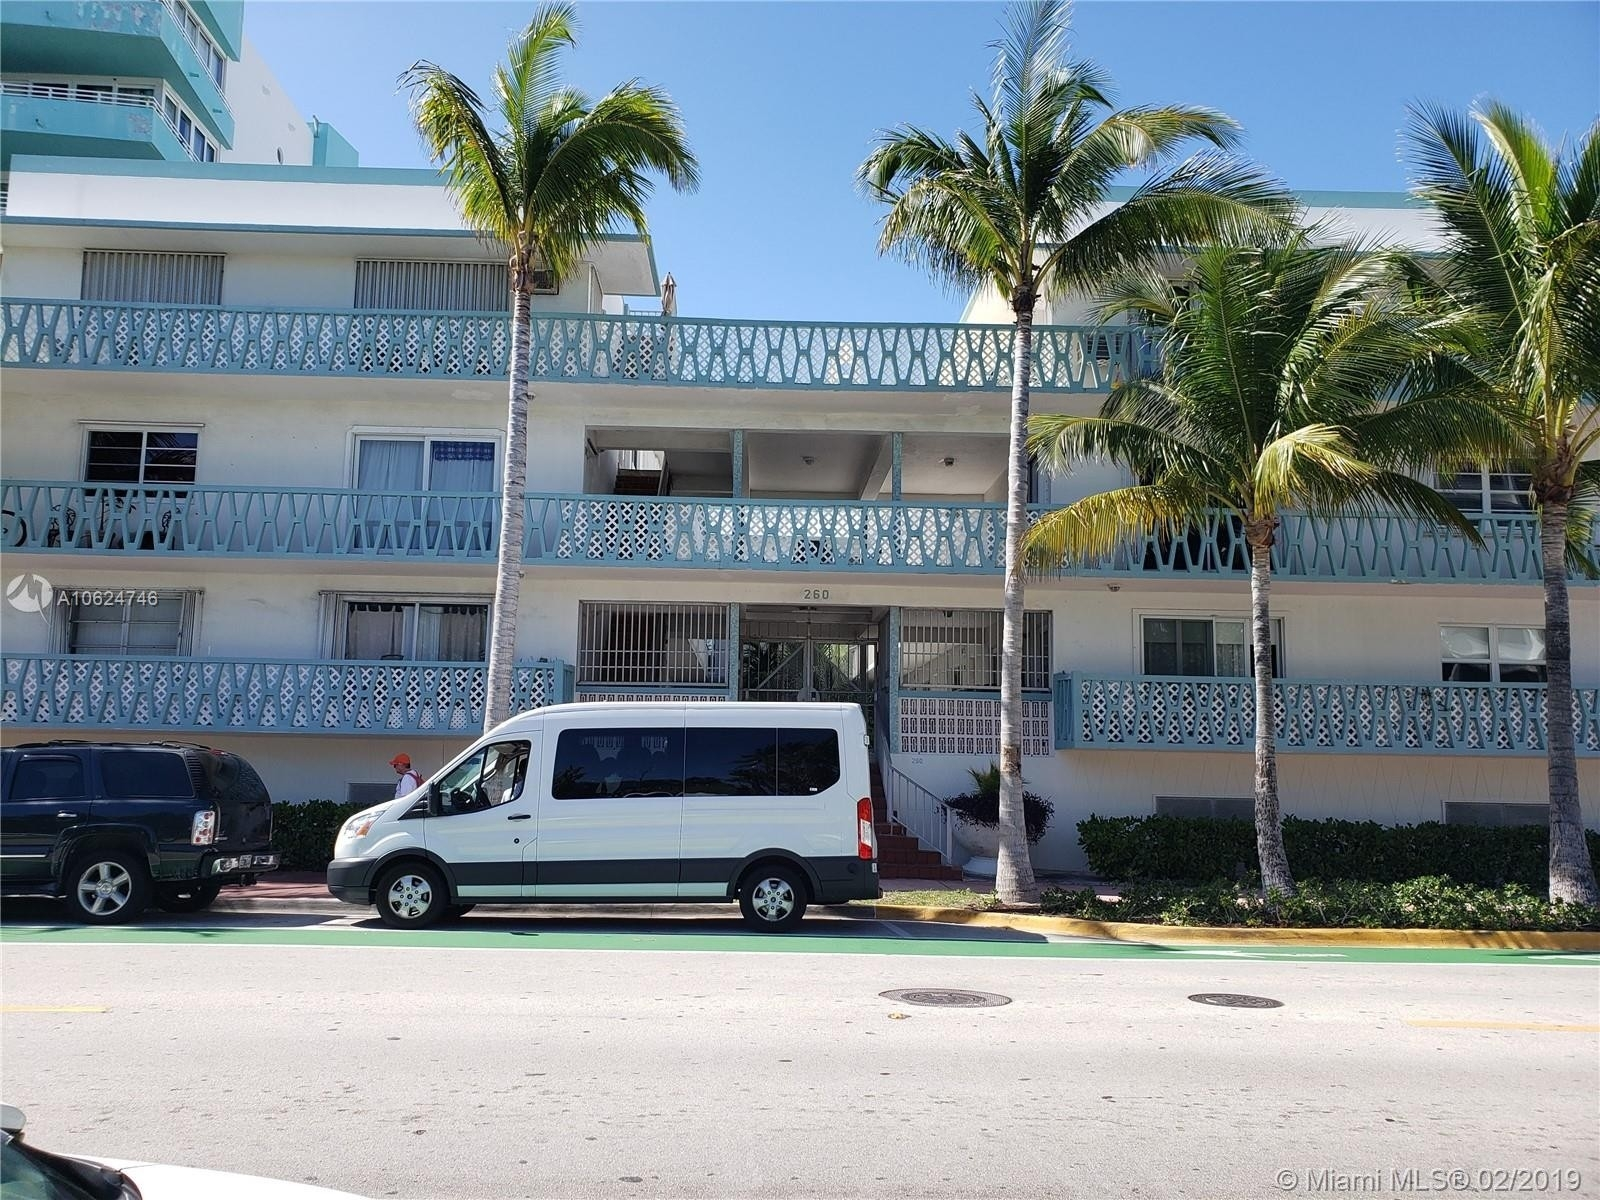 Property at 260 Ocean Dr , 2 and 3 SoFi, Miami Beach, FL 33139